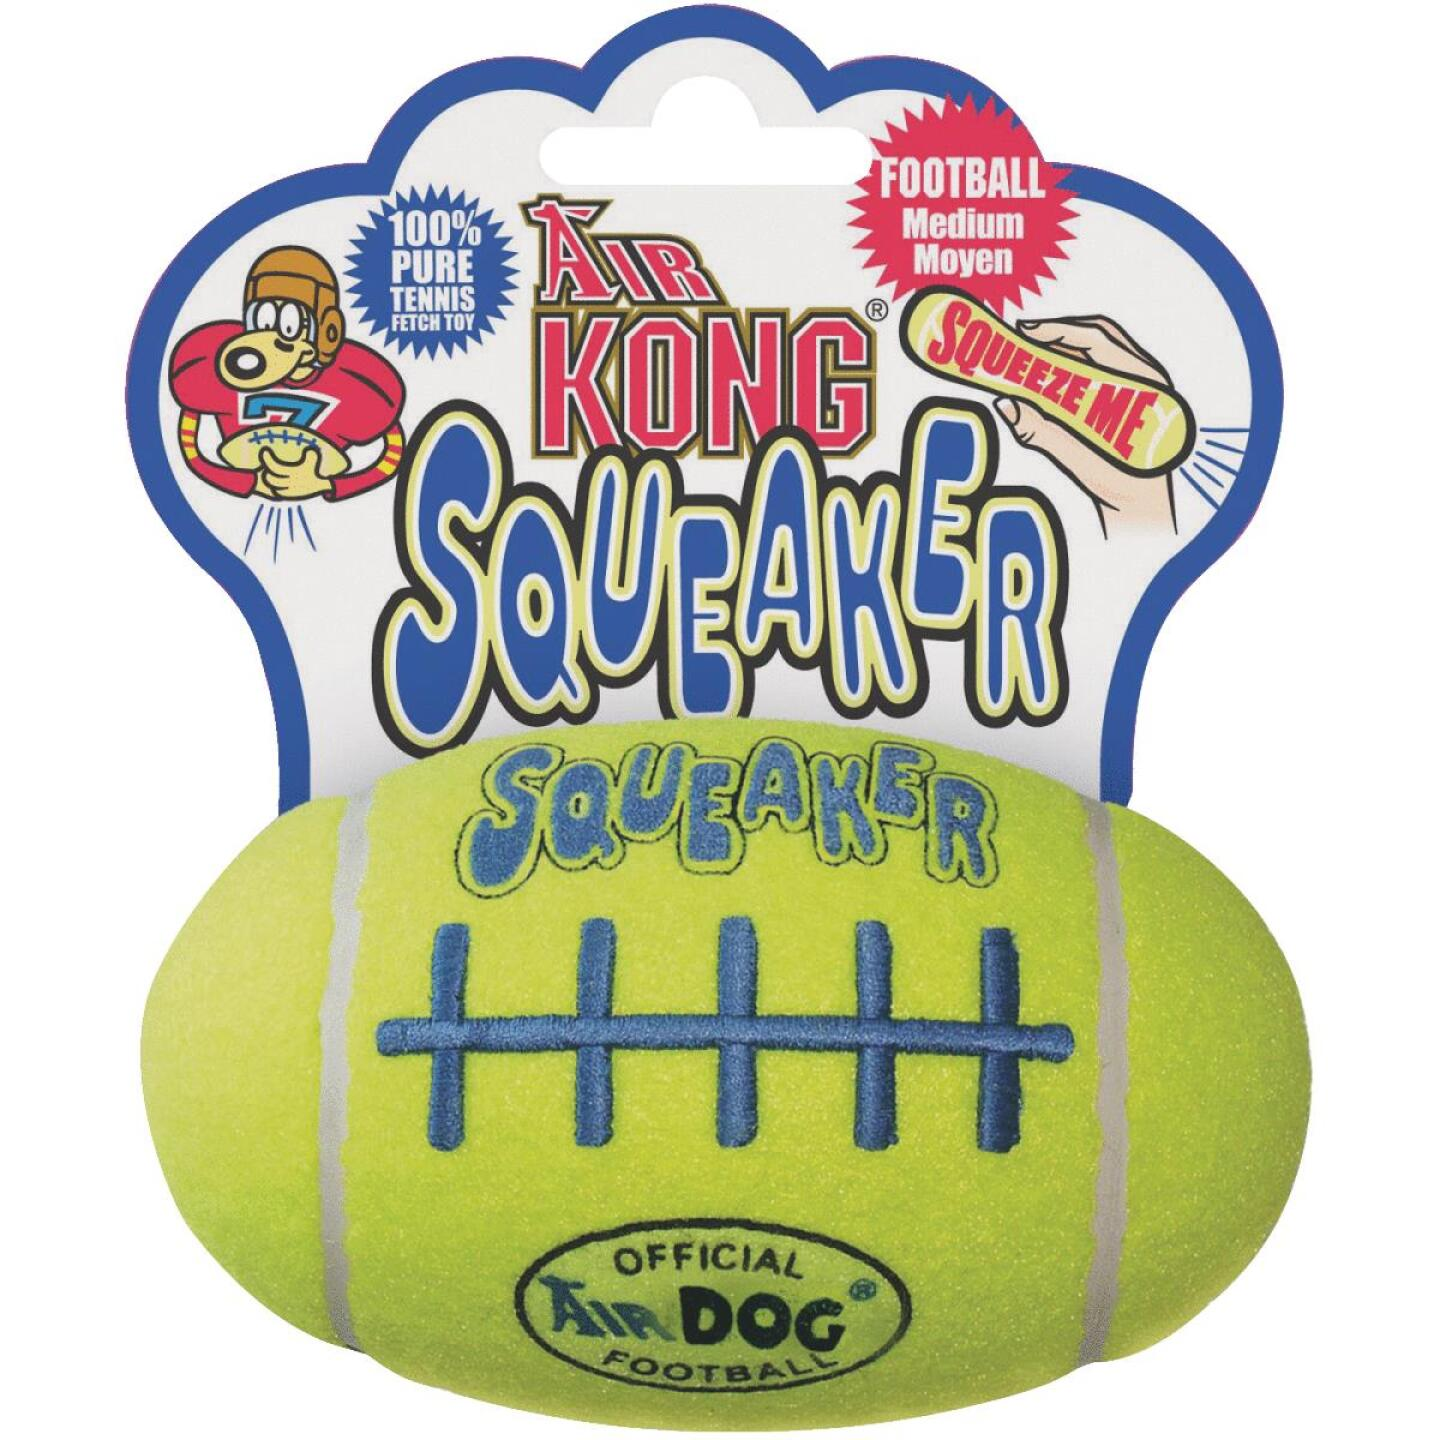 Air Kong Squeaky Medium Football Dog Toy Image 1